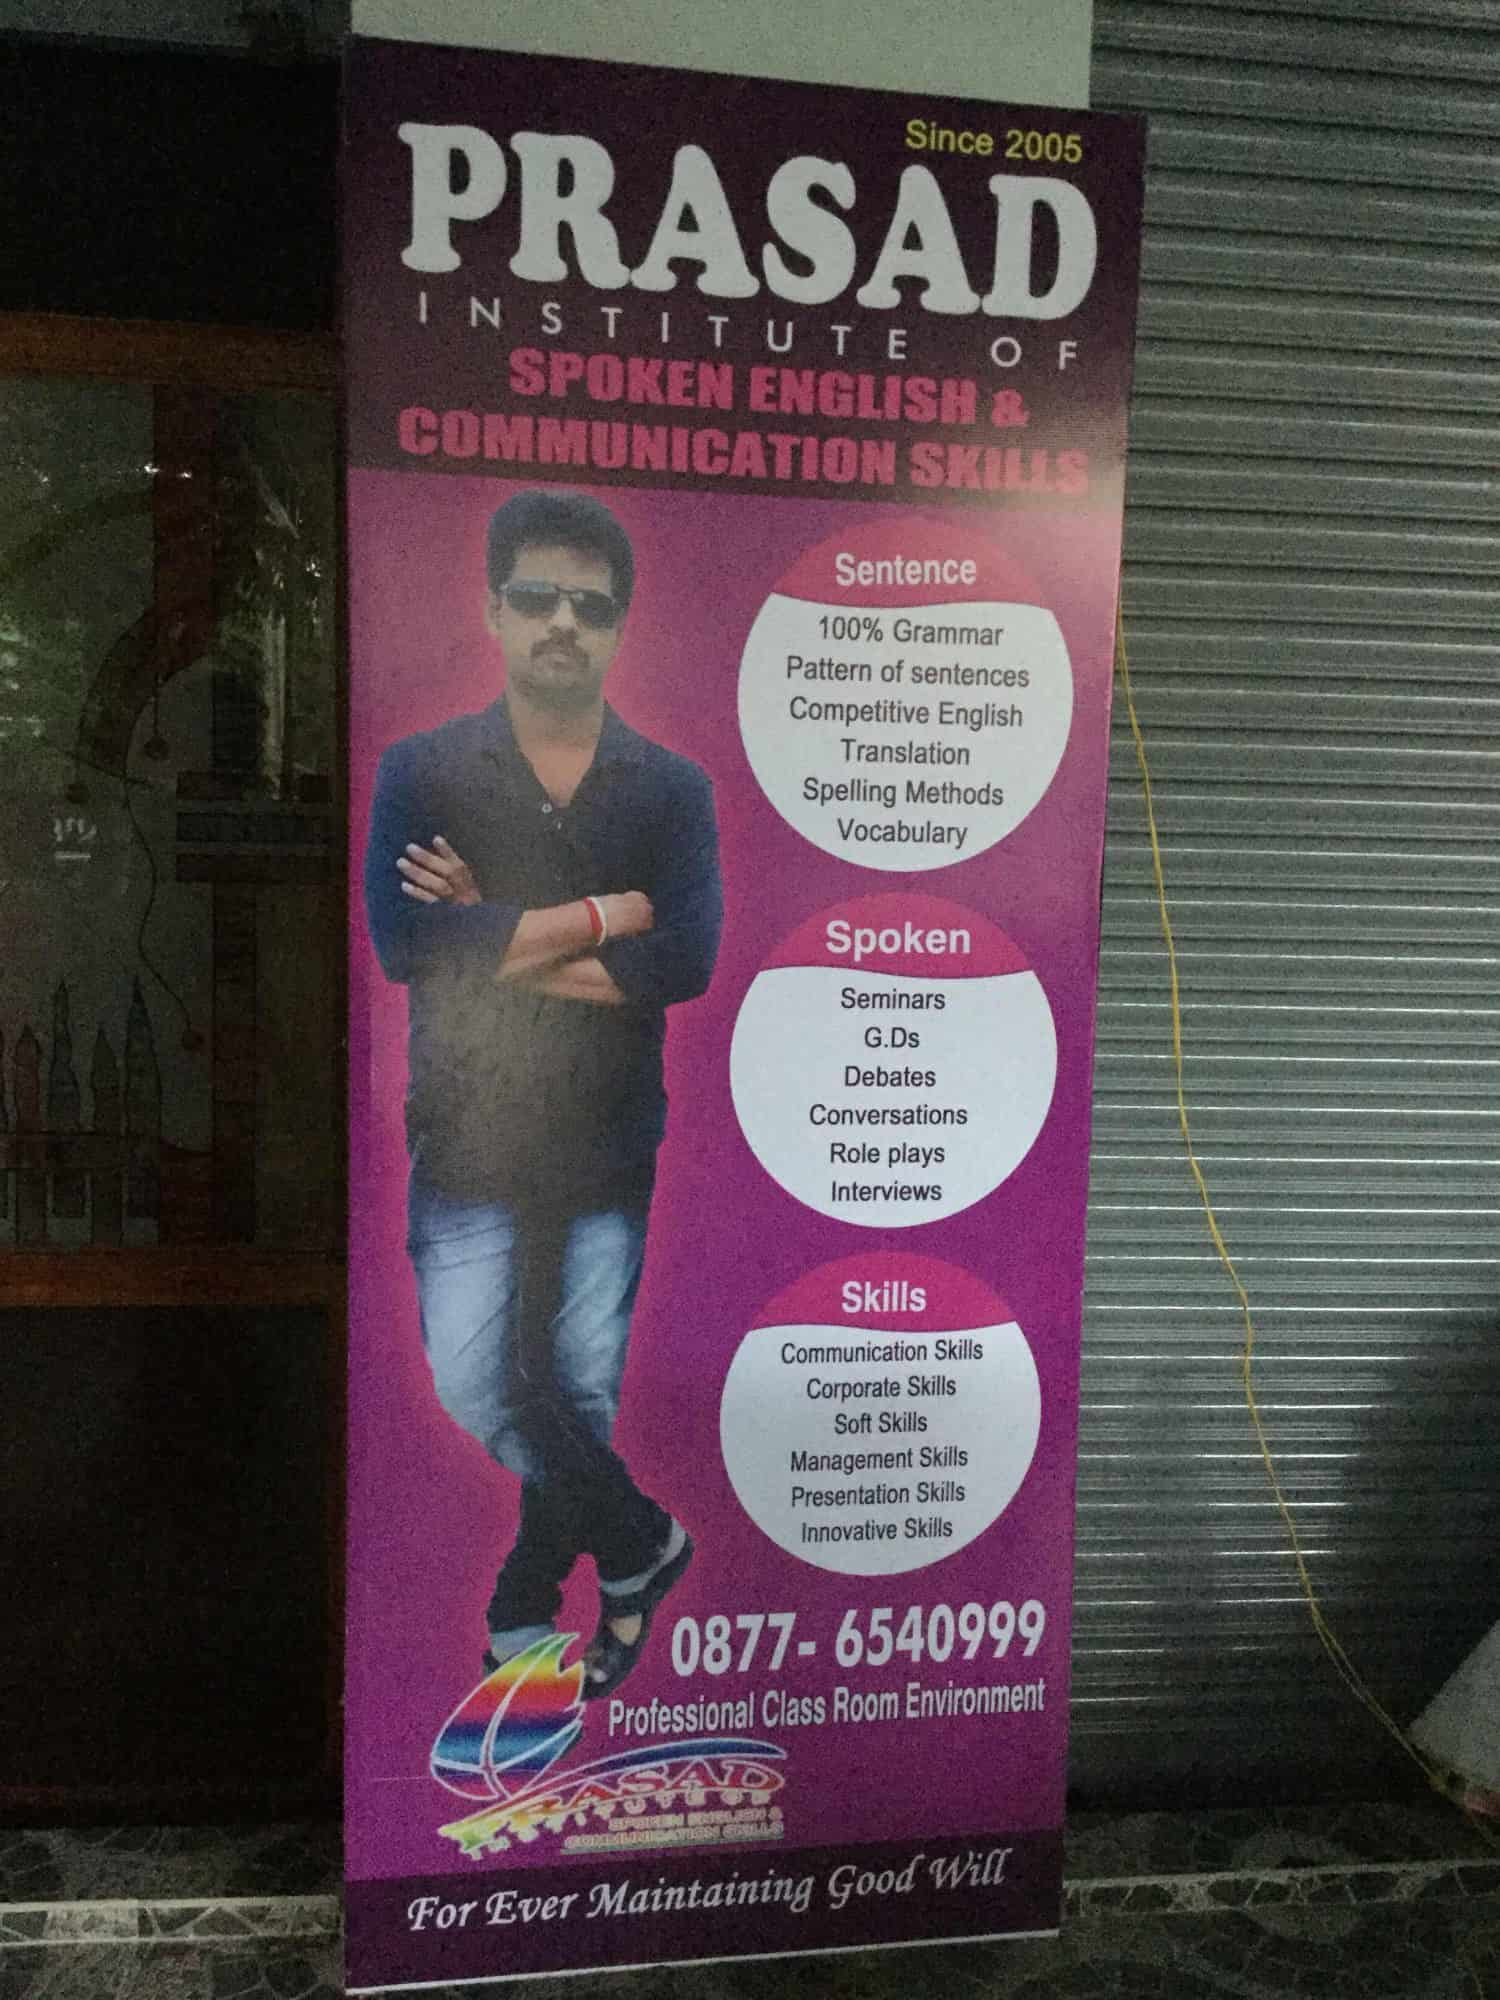 Prasad Spoken English Communication Skills, Balaji Nagar - Language